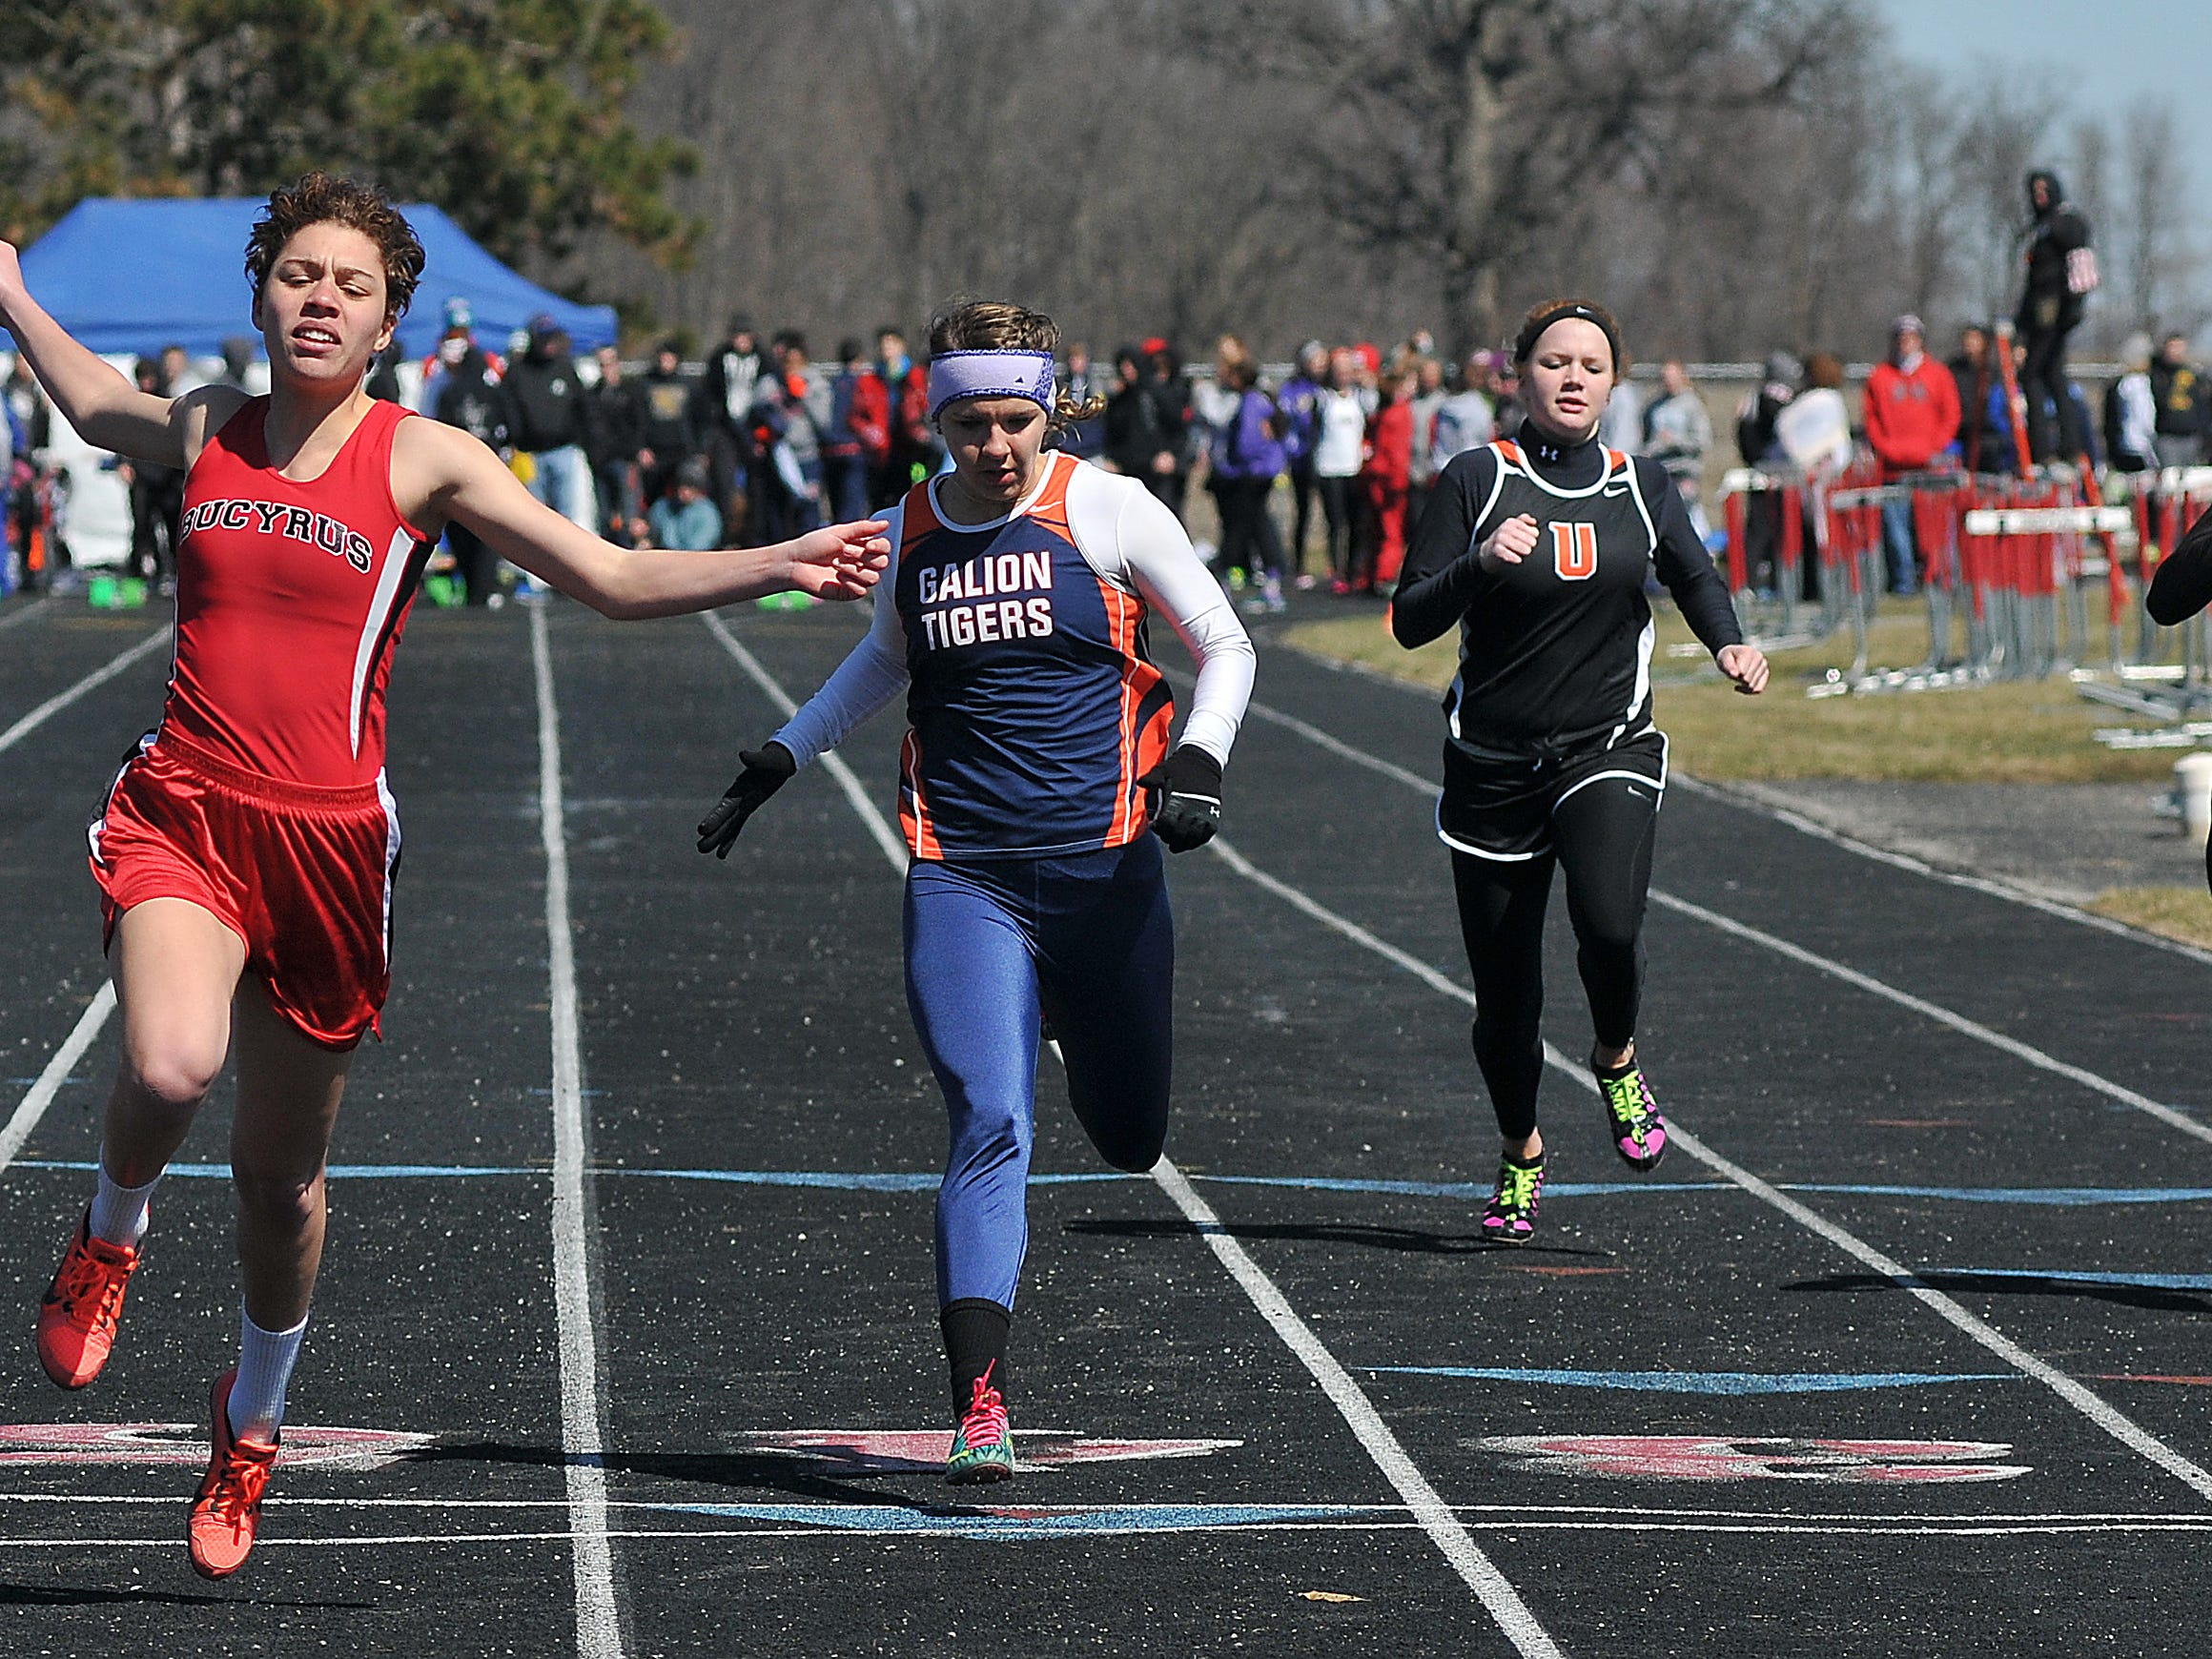 Bucyrus' Brittany Parsel crosses the finish line during the Girls 100 Meter Dash at the Bucyrus Elks 156 Invitaional Saturday at Bucyrus High School.